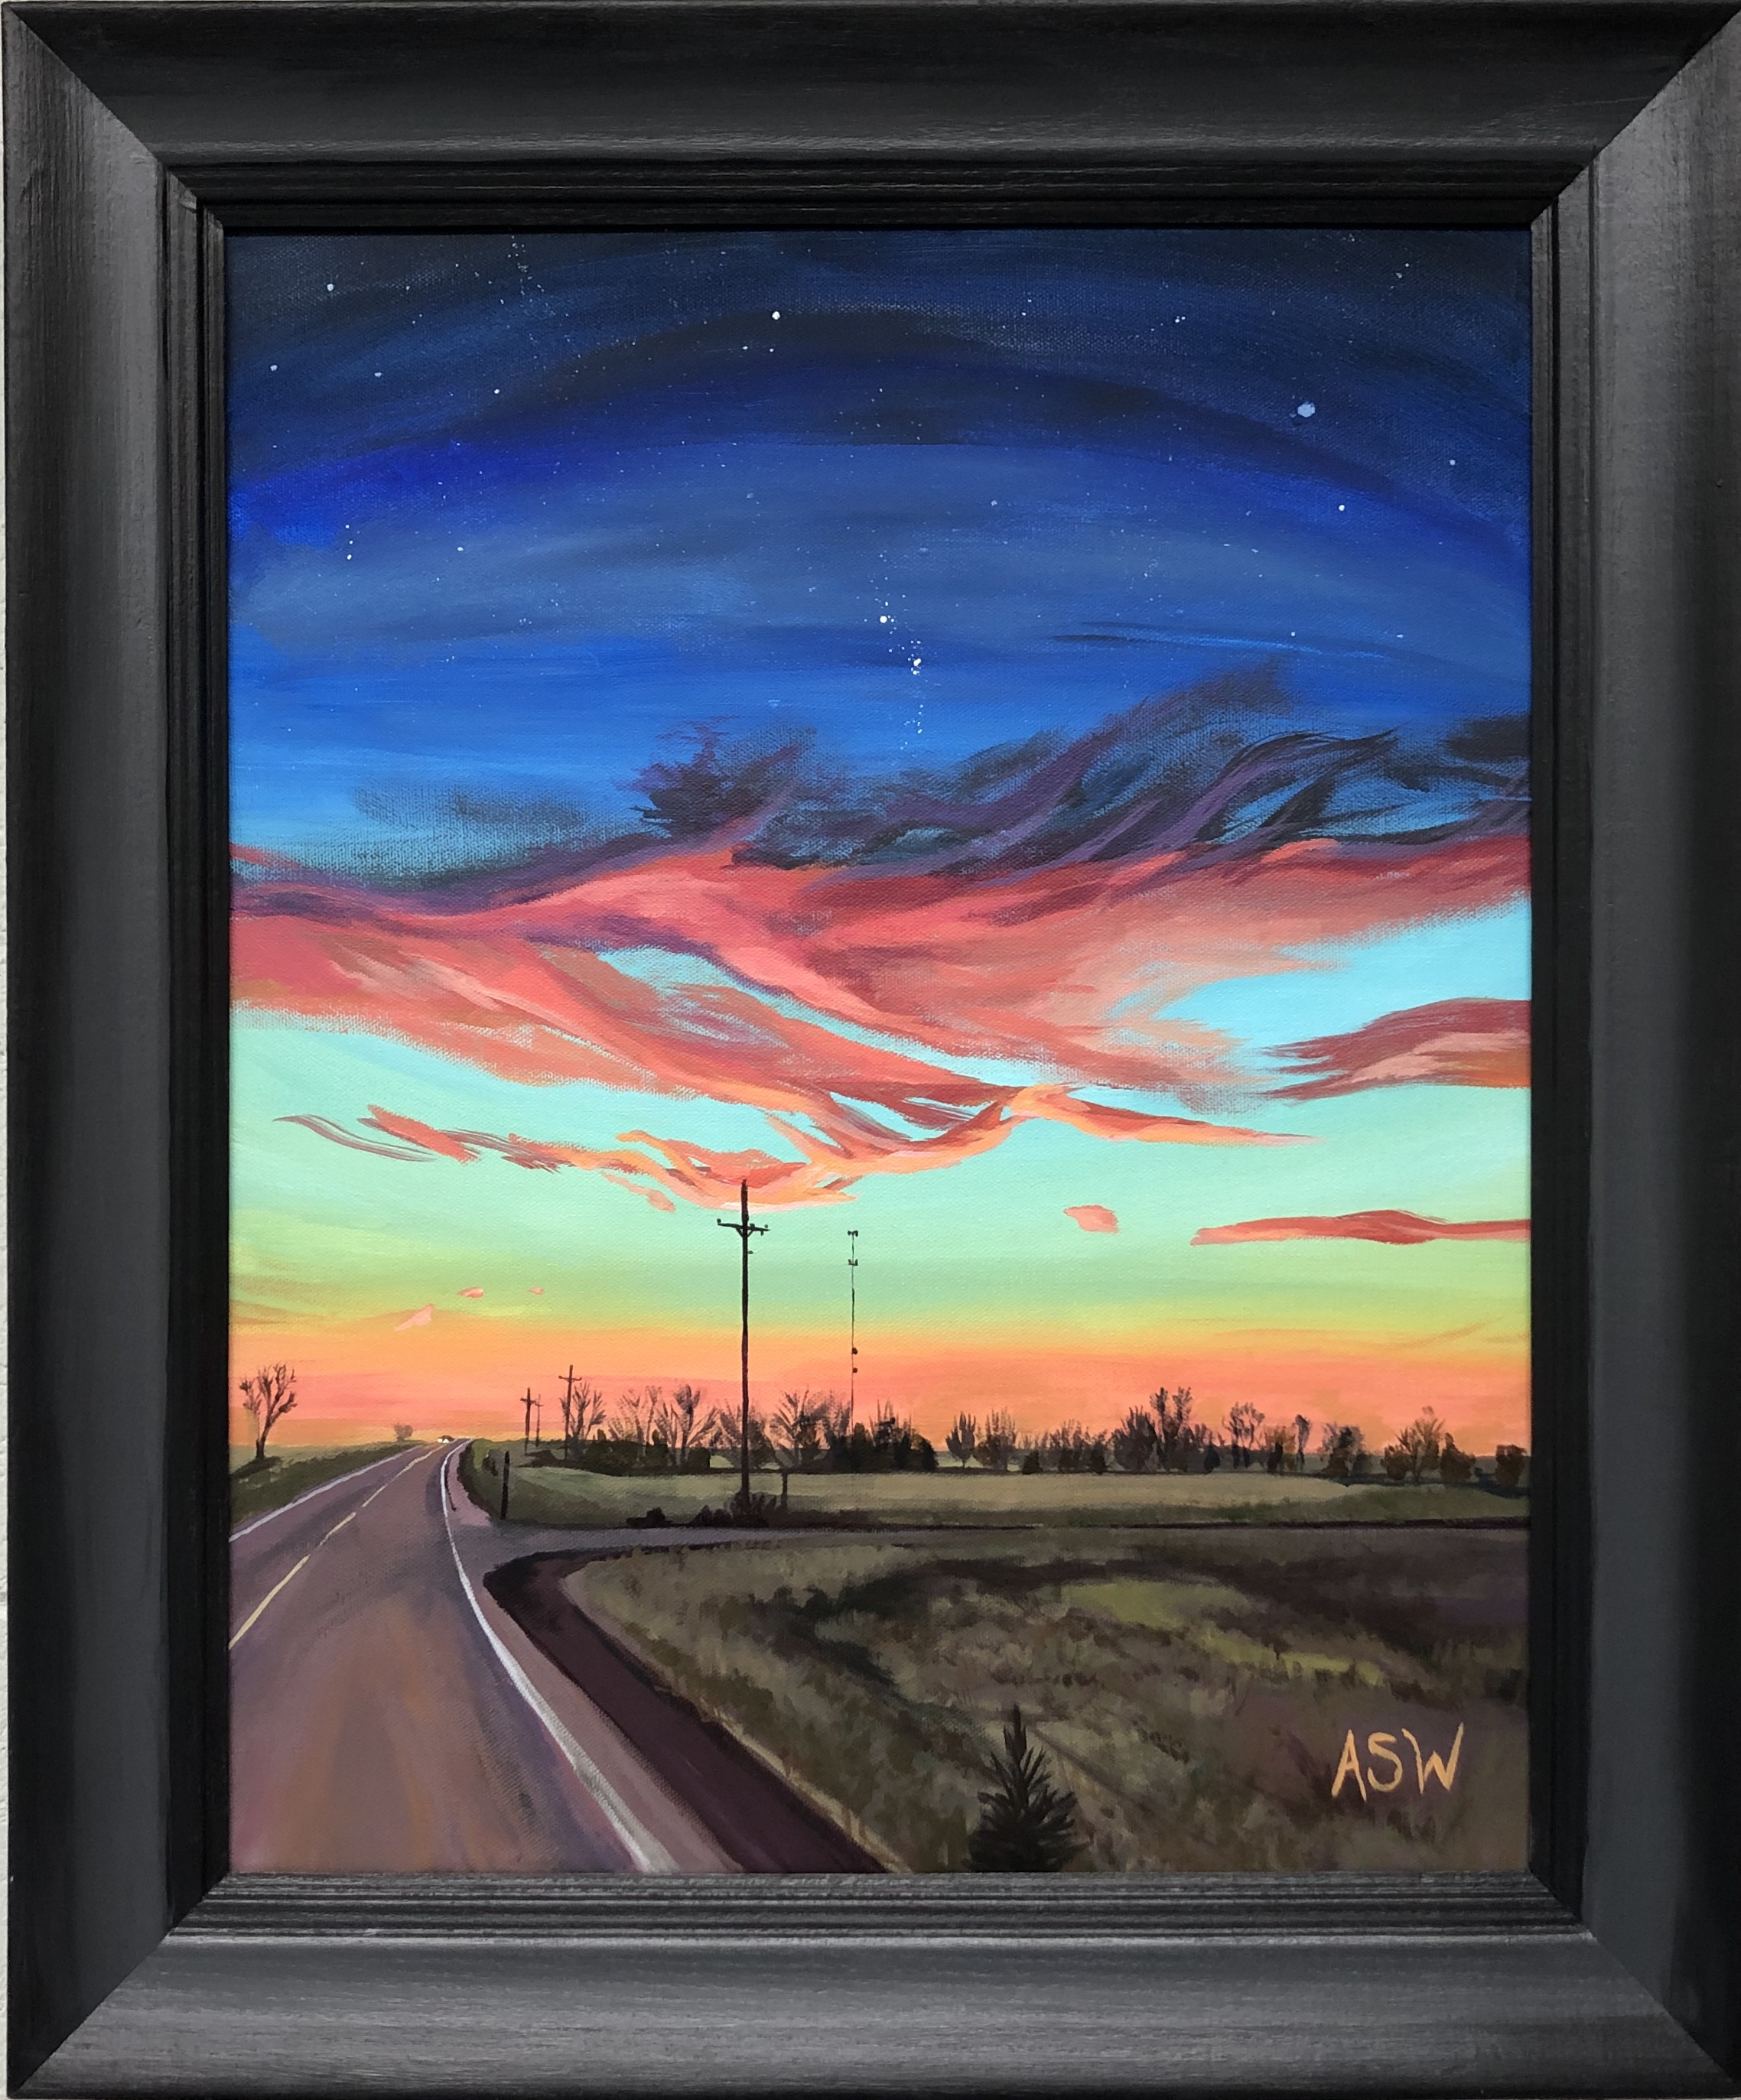 Sunrise on the Road, 2019